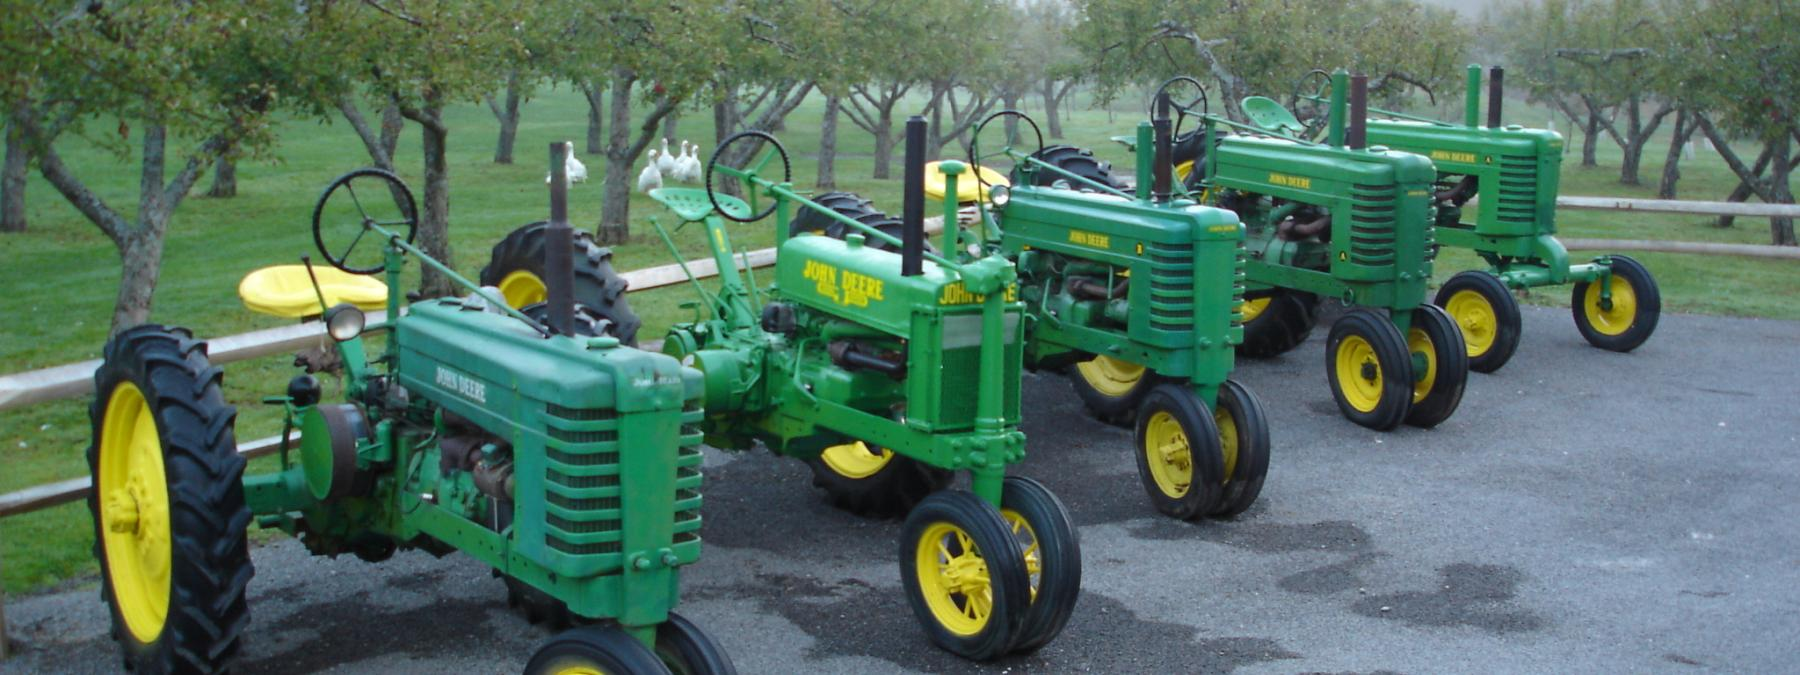 Powerful Deere's